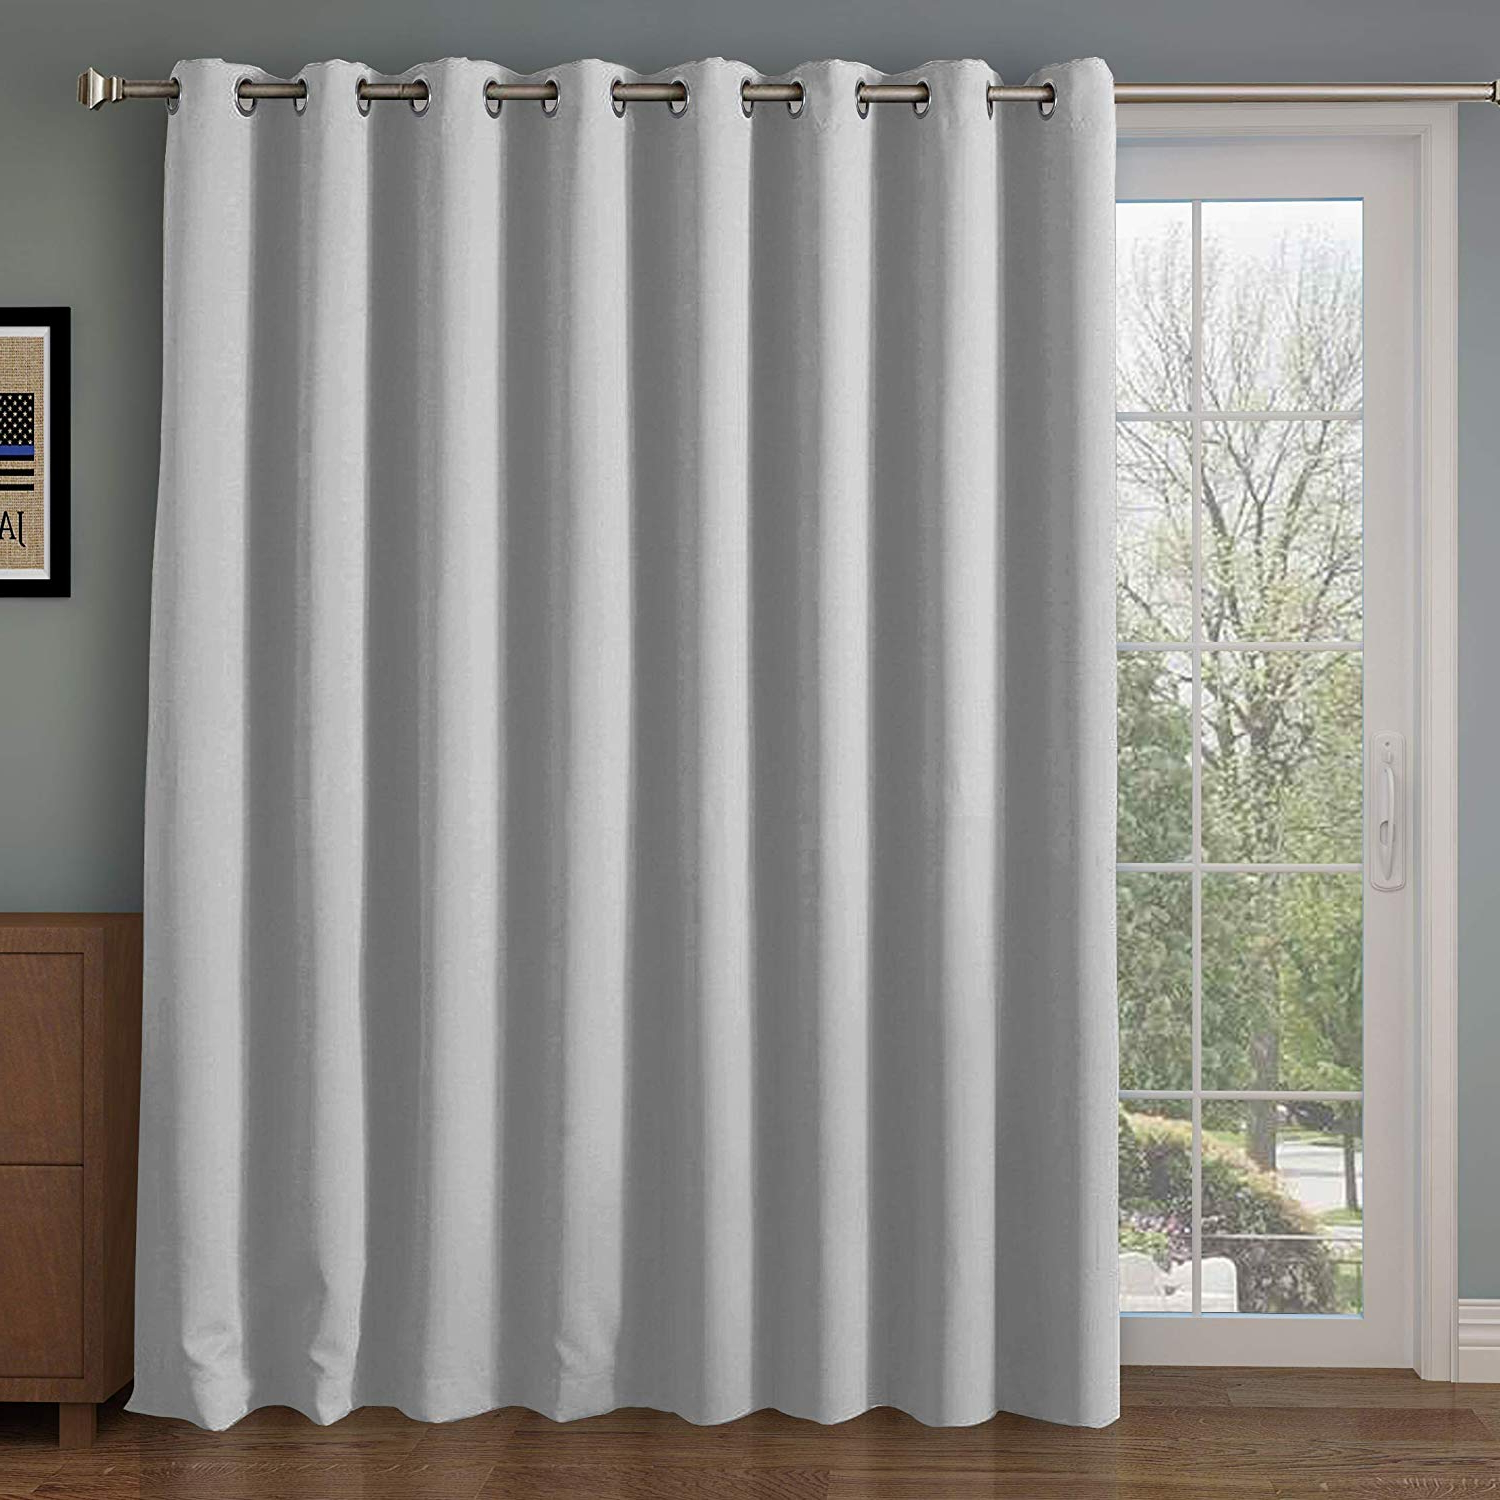 Newest Wide Blackout Patio Door Curtain Panel&sliding Door Insulated Curtains,thermal&extra Wide Curtains,for Curtain Rod Silver,silver Grommet Top Blackout Within Patio Grommet Top Single Curtain Panels (View 10 of 20)